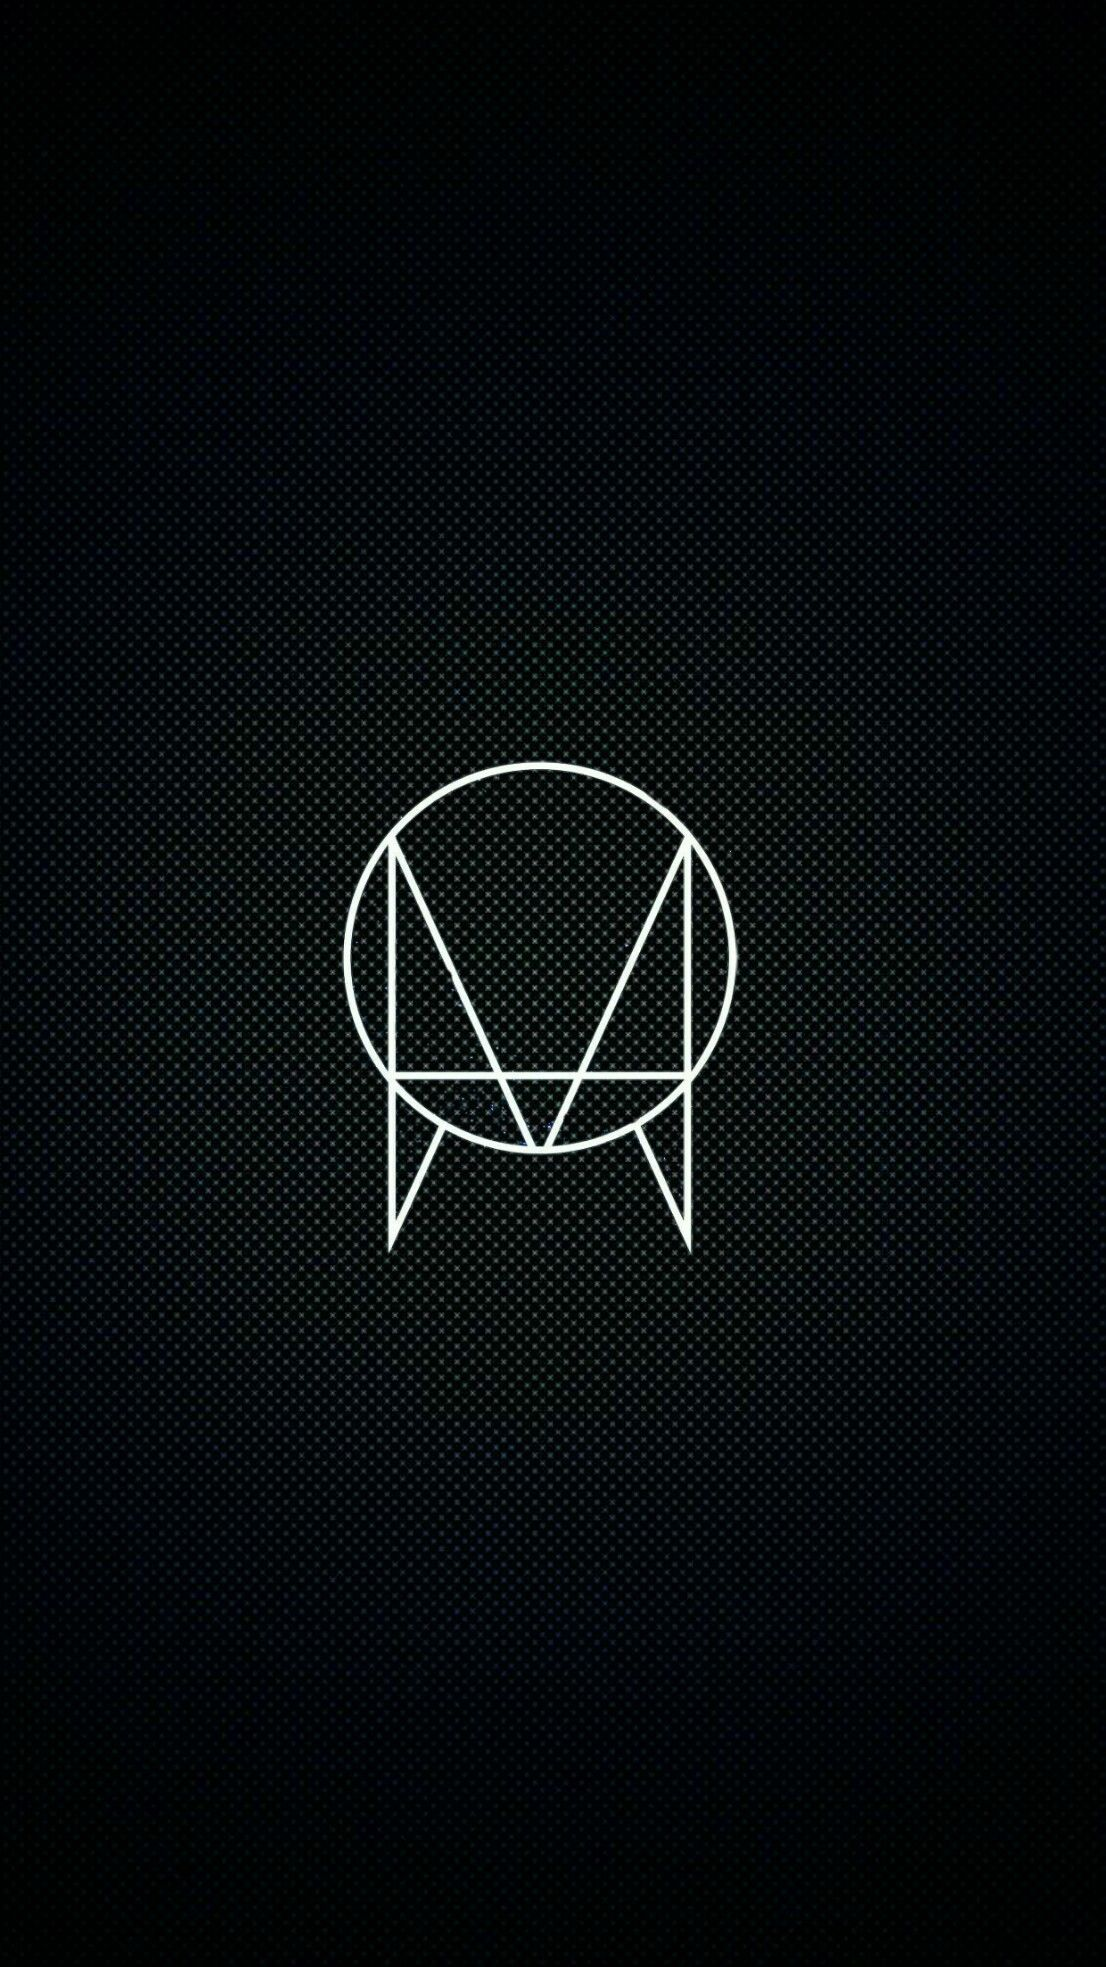 owsla iphone